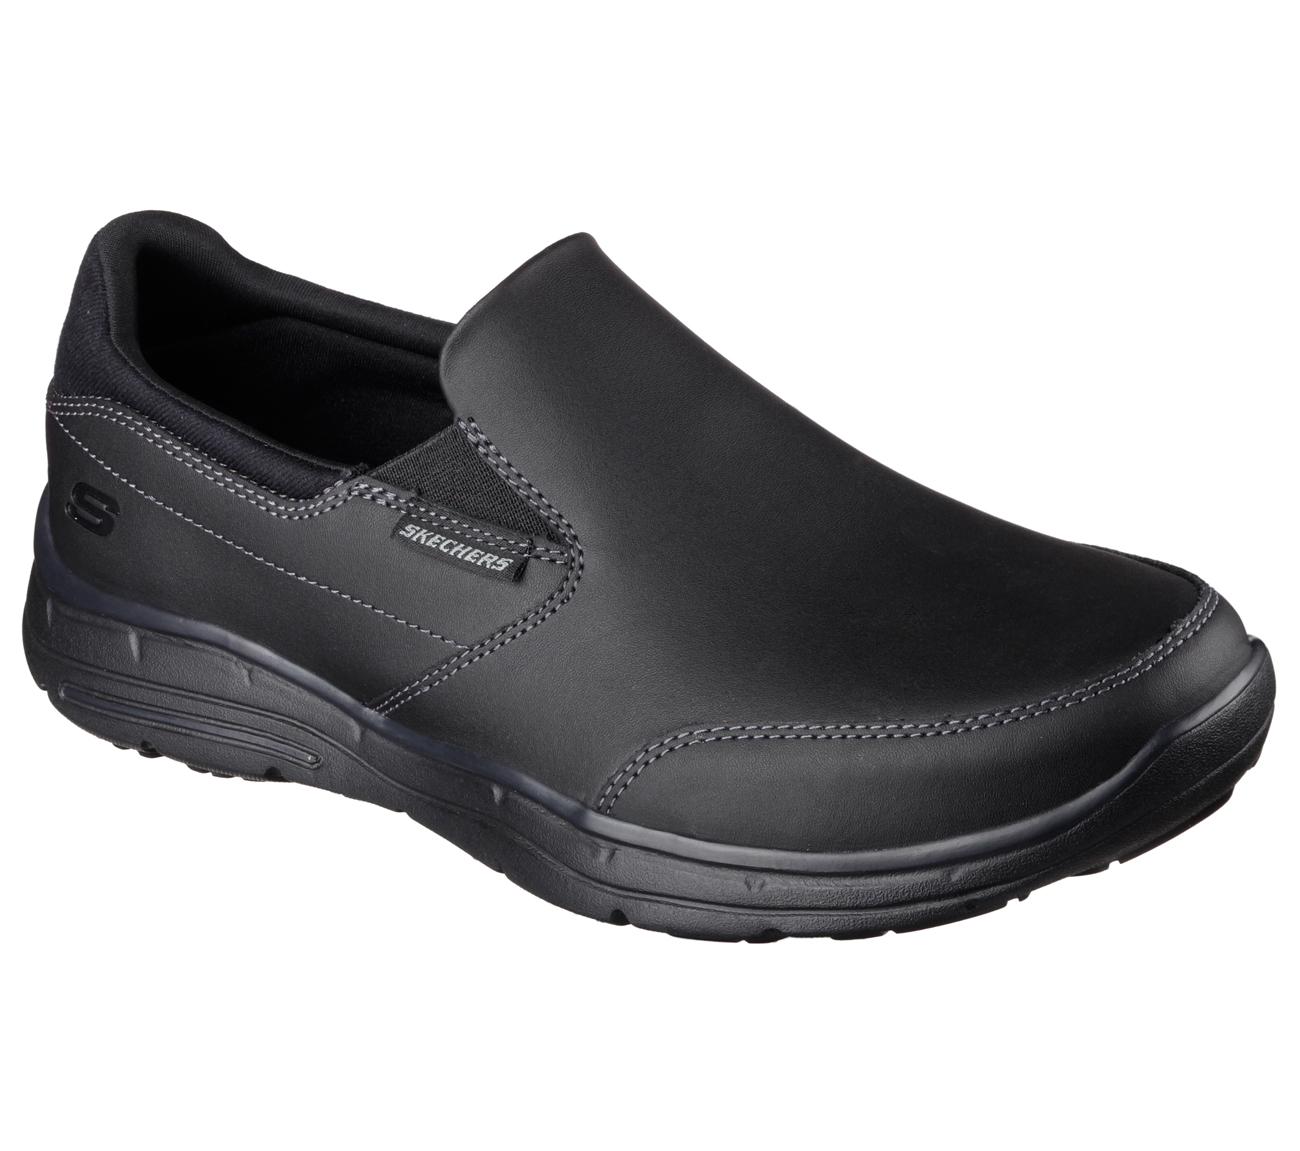 The Skechers clearance is a good place to start if you're on the hunt for a quality pair of sale shoes plus, shoppers can always find at least $10 or 20% off your order with a promotion on this store page.